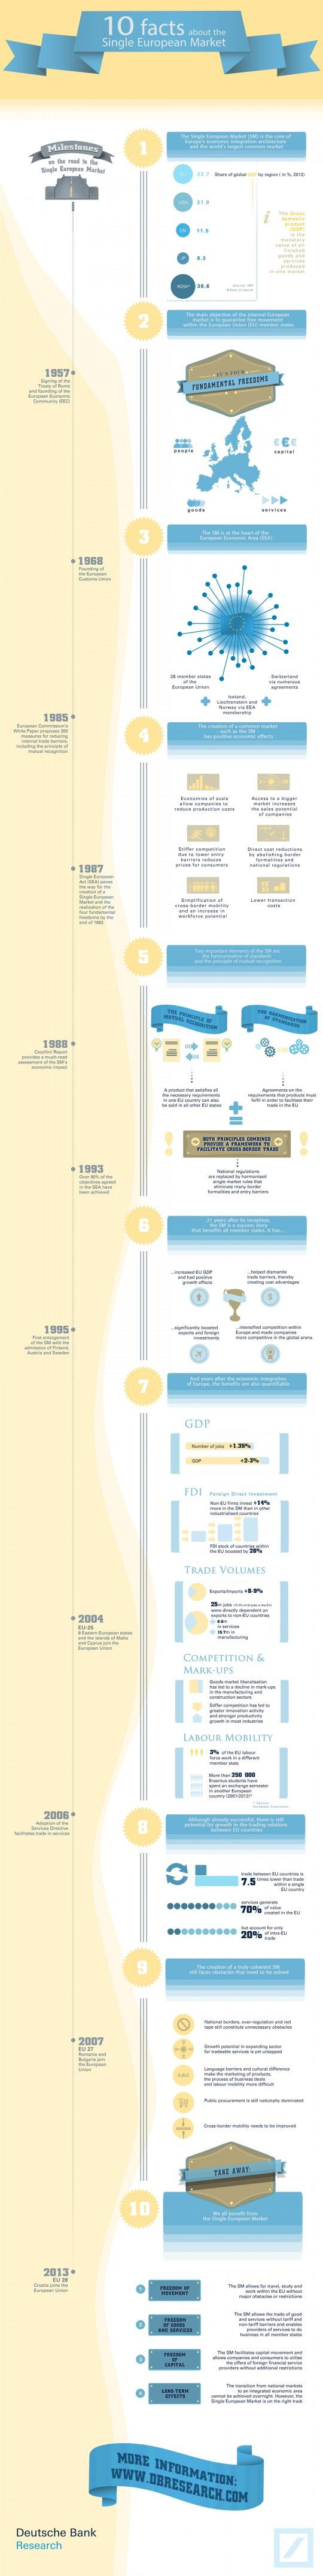 10 Facts About The Single European Market